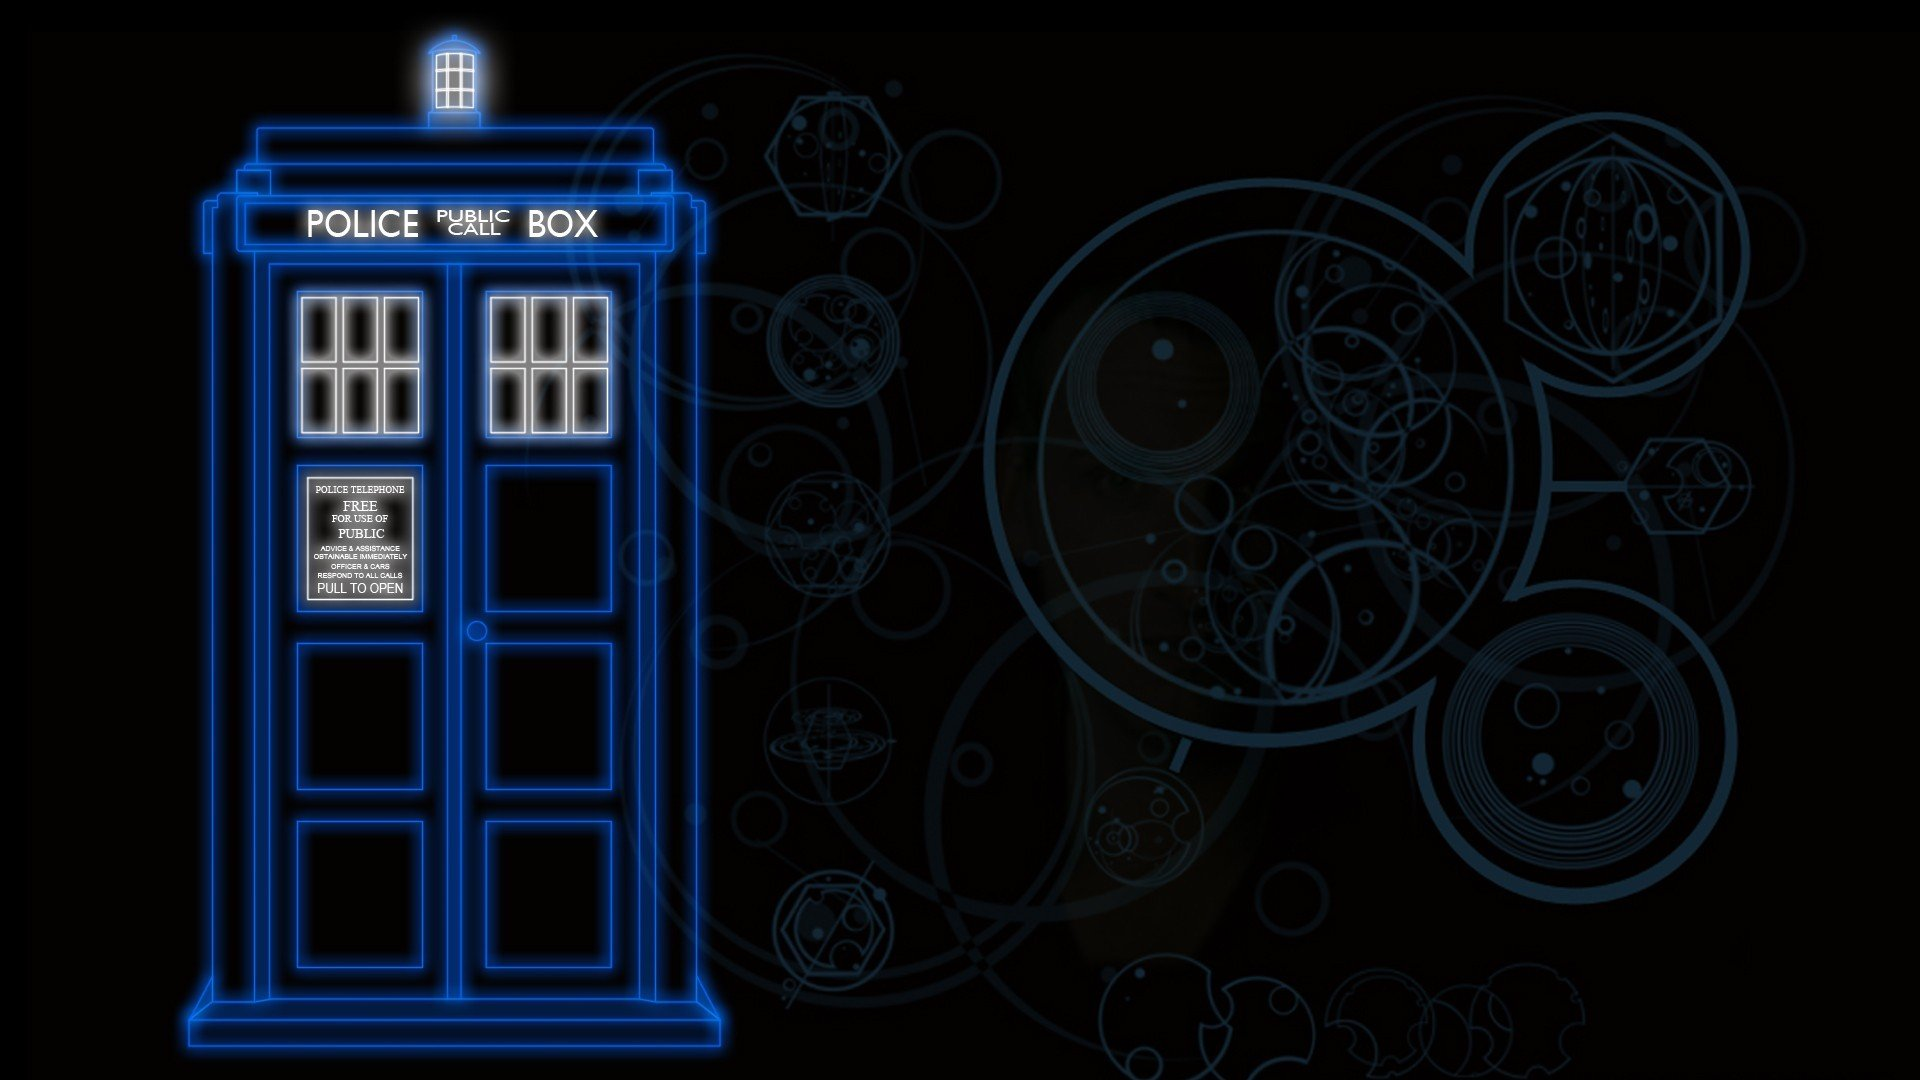 tardis images hd wallpaper - photo #14